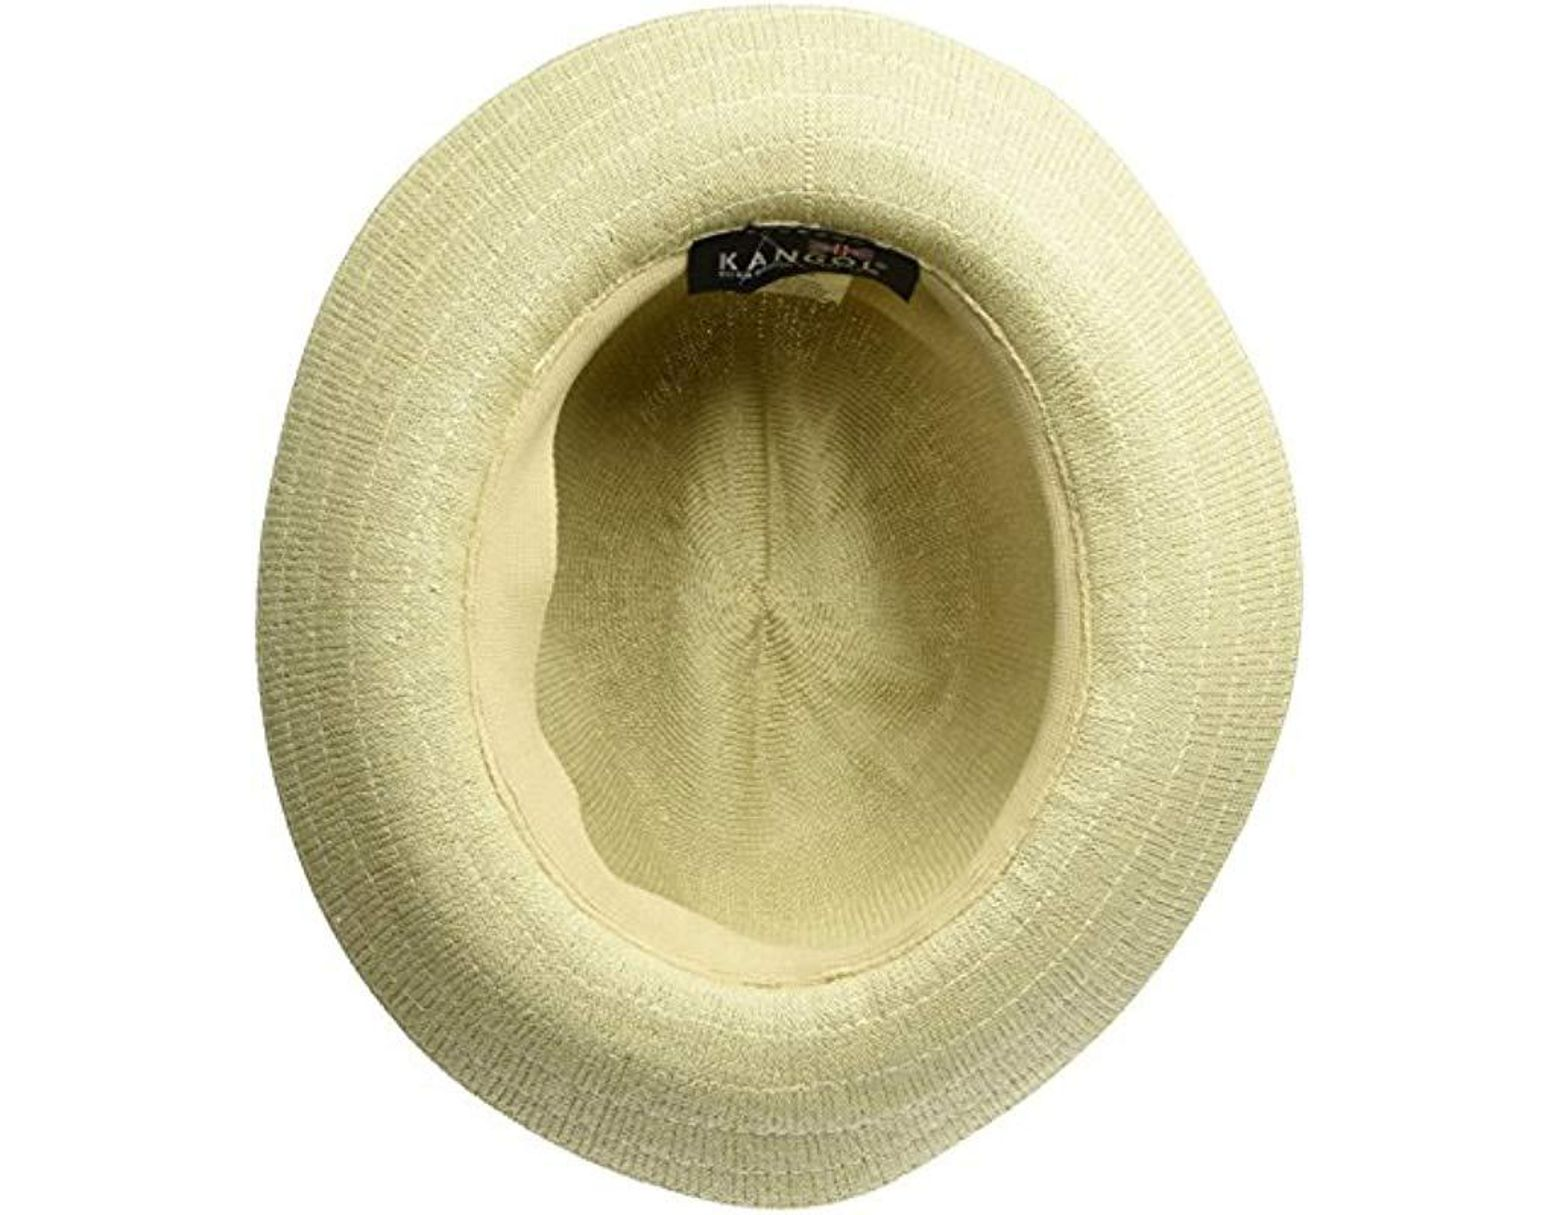 6232ed91e4f16 Kangol Bamboo Gent Fedora Hat in Natural for Men - Save 63% - Lyst